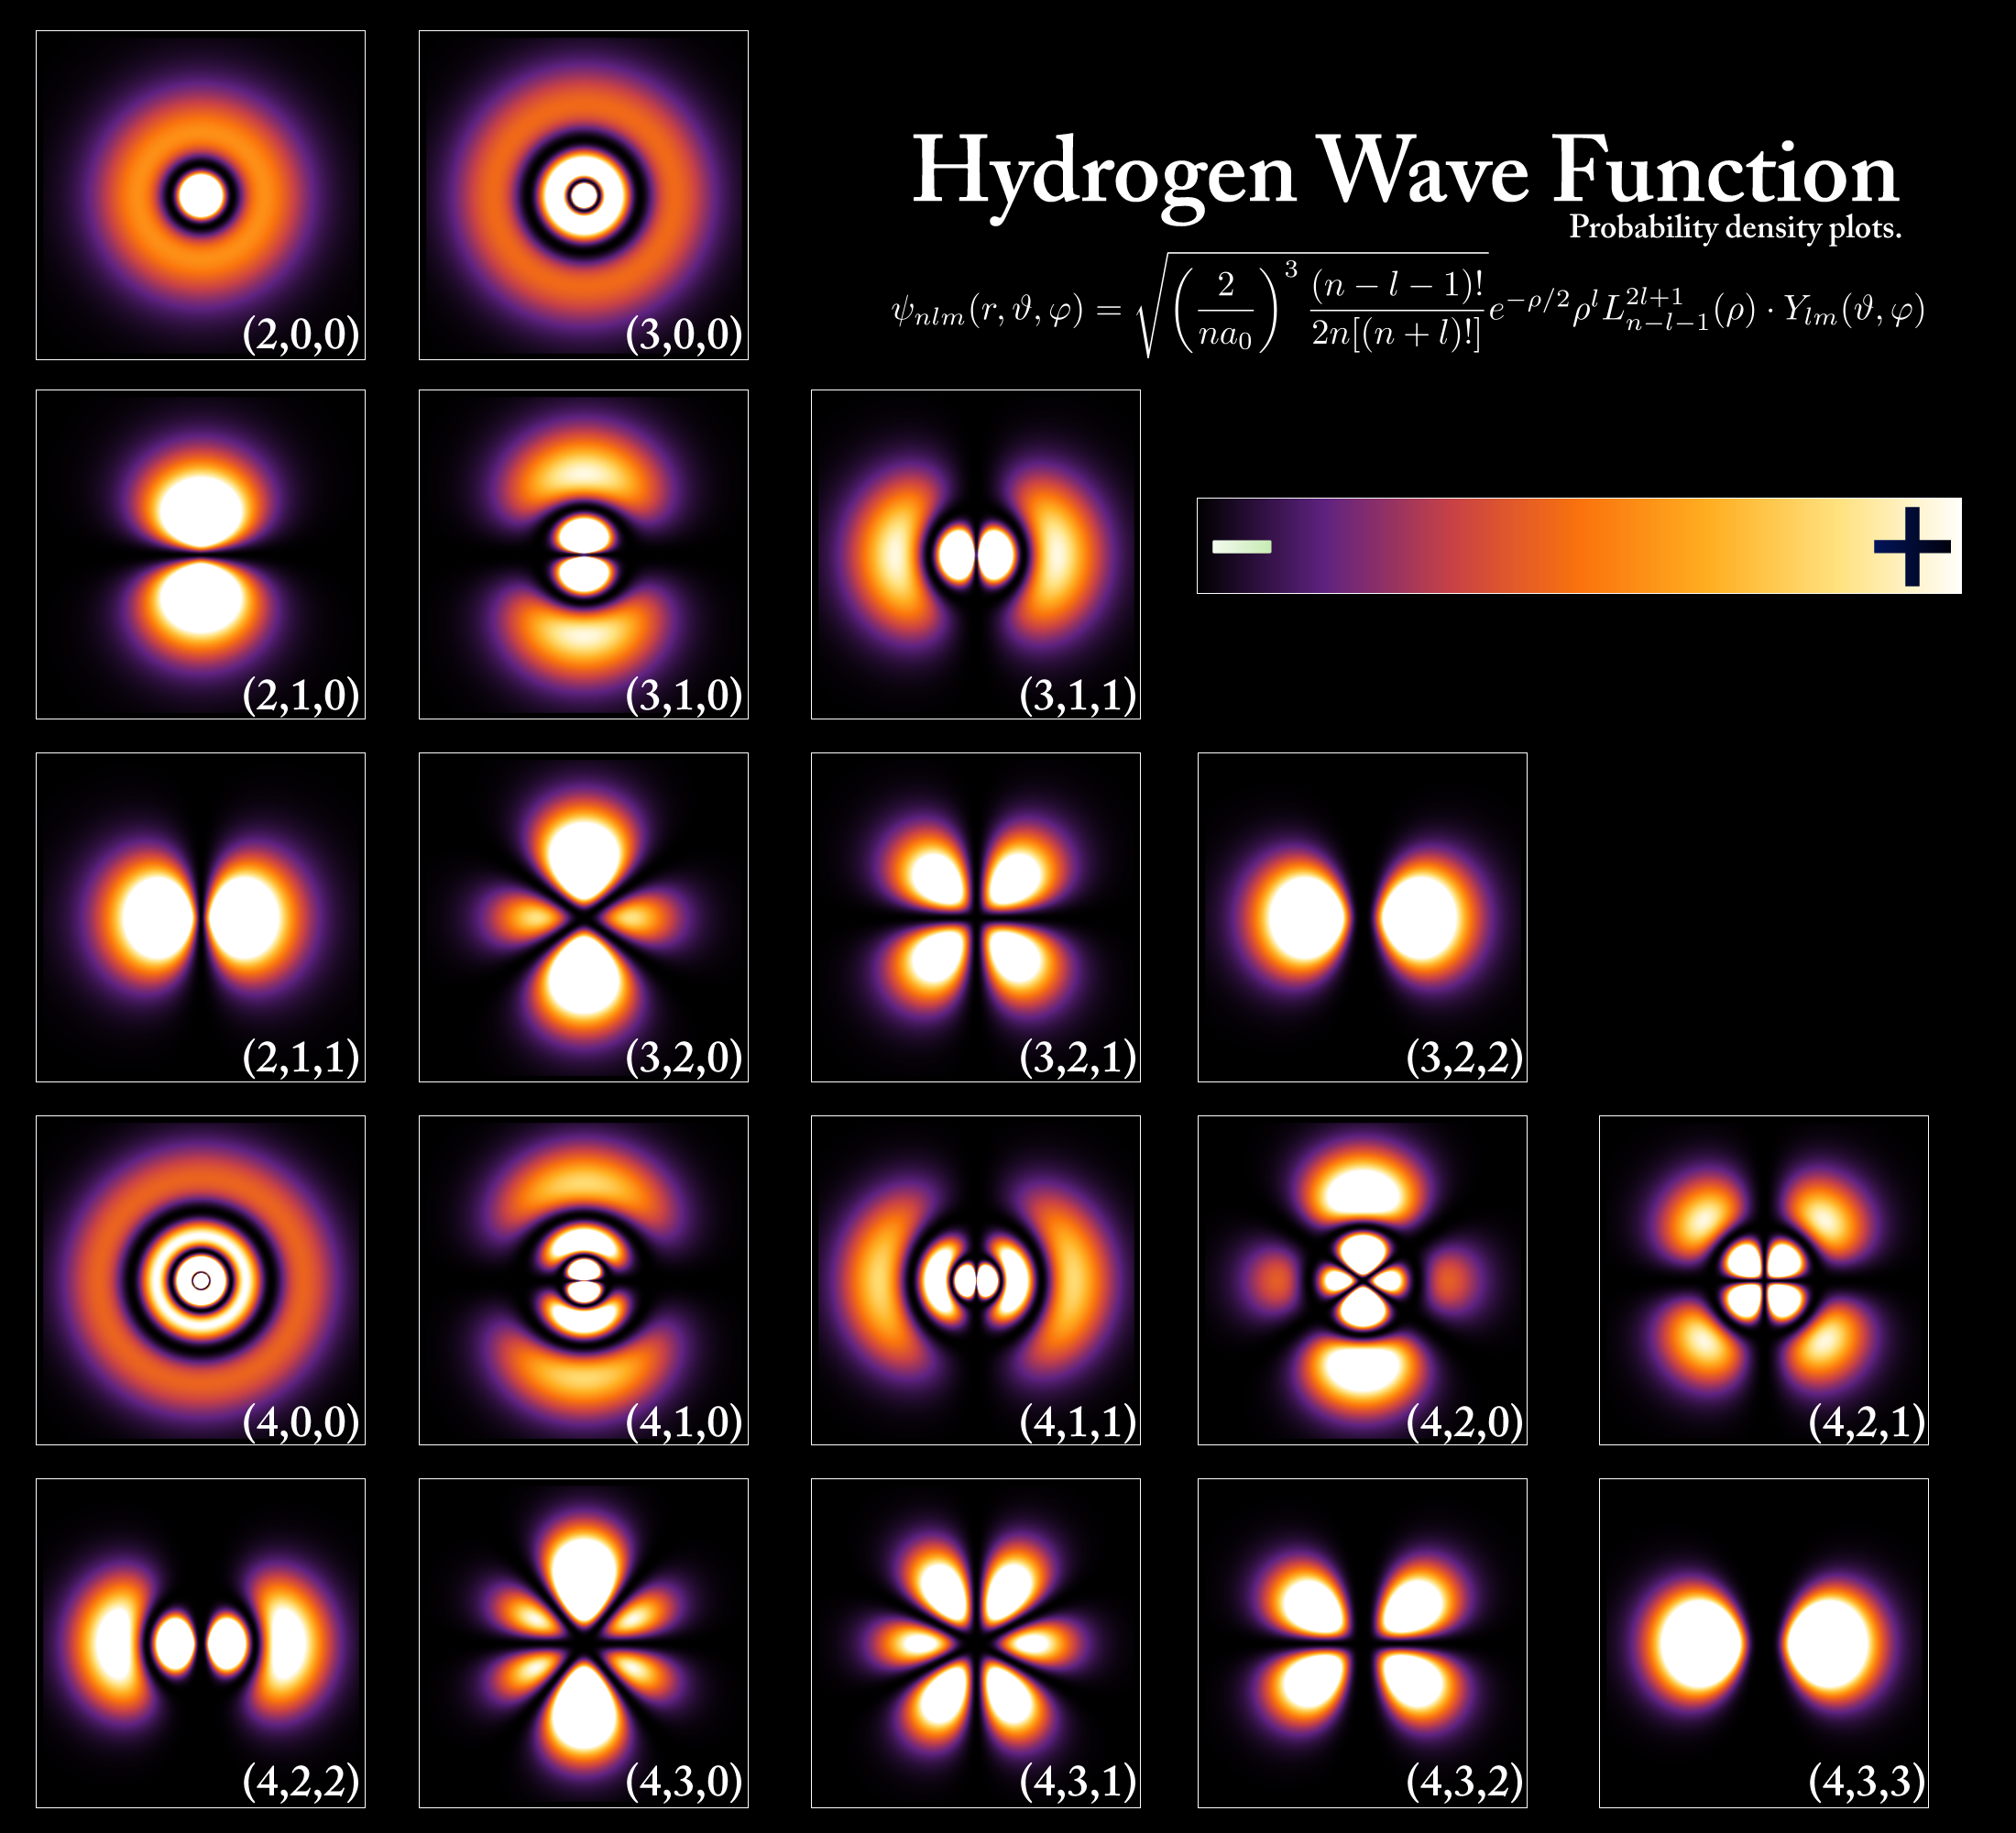 http://upload.wikimedia.org/wikipedia/commons/e/e7/Hydrogen_Density_Plots.png